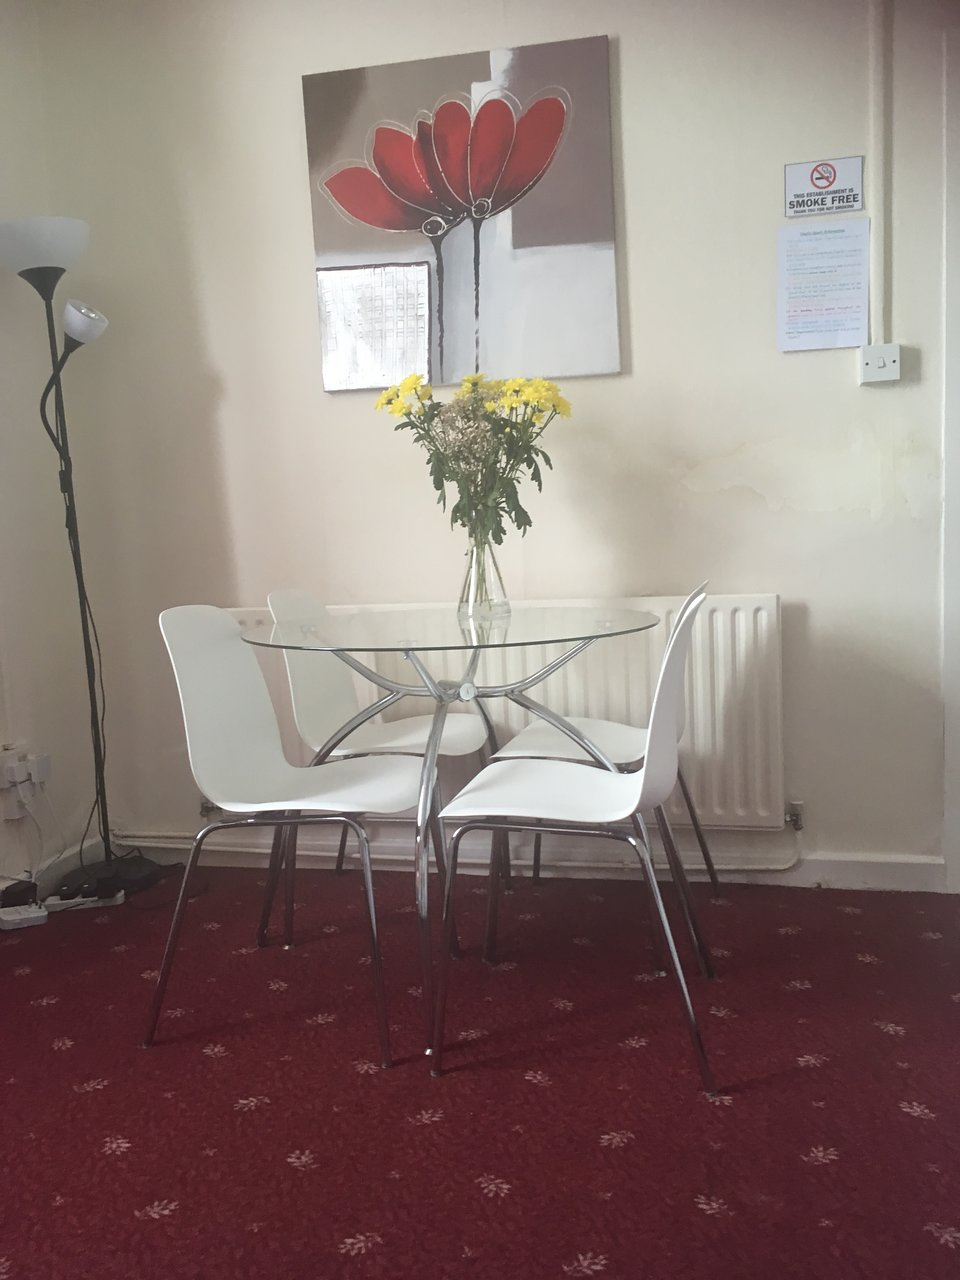 Speed Dating Stoke na Trent Staffordshire